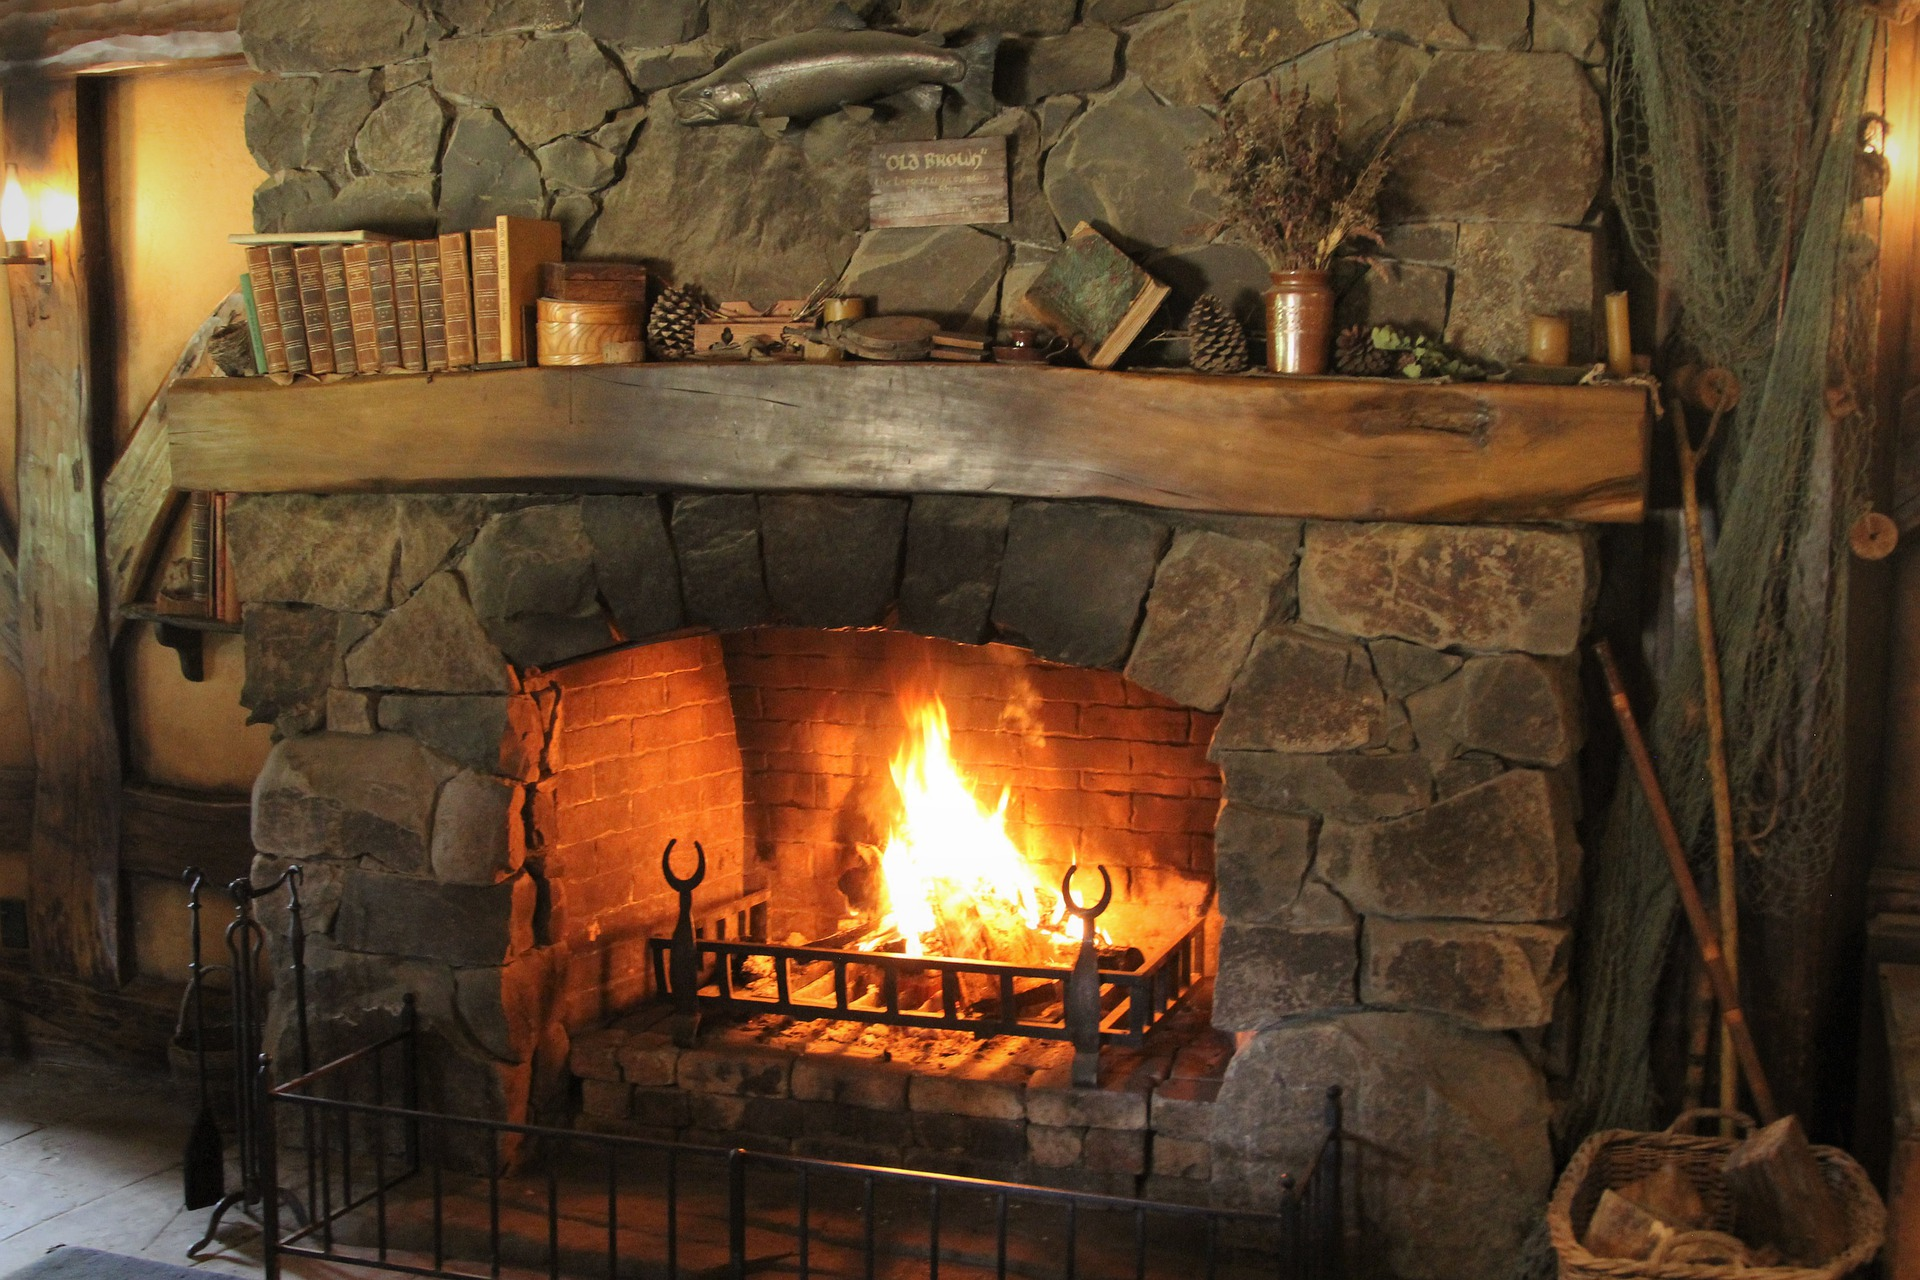 Wisconsin Houses for Sale with Fireplace 175K to 180K